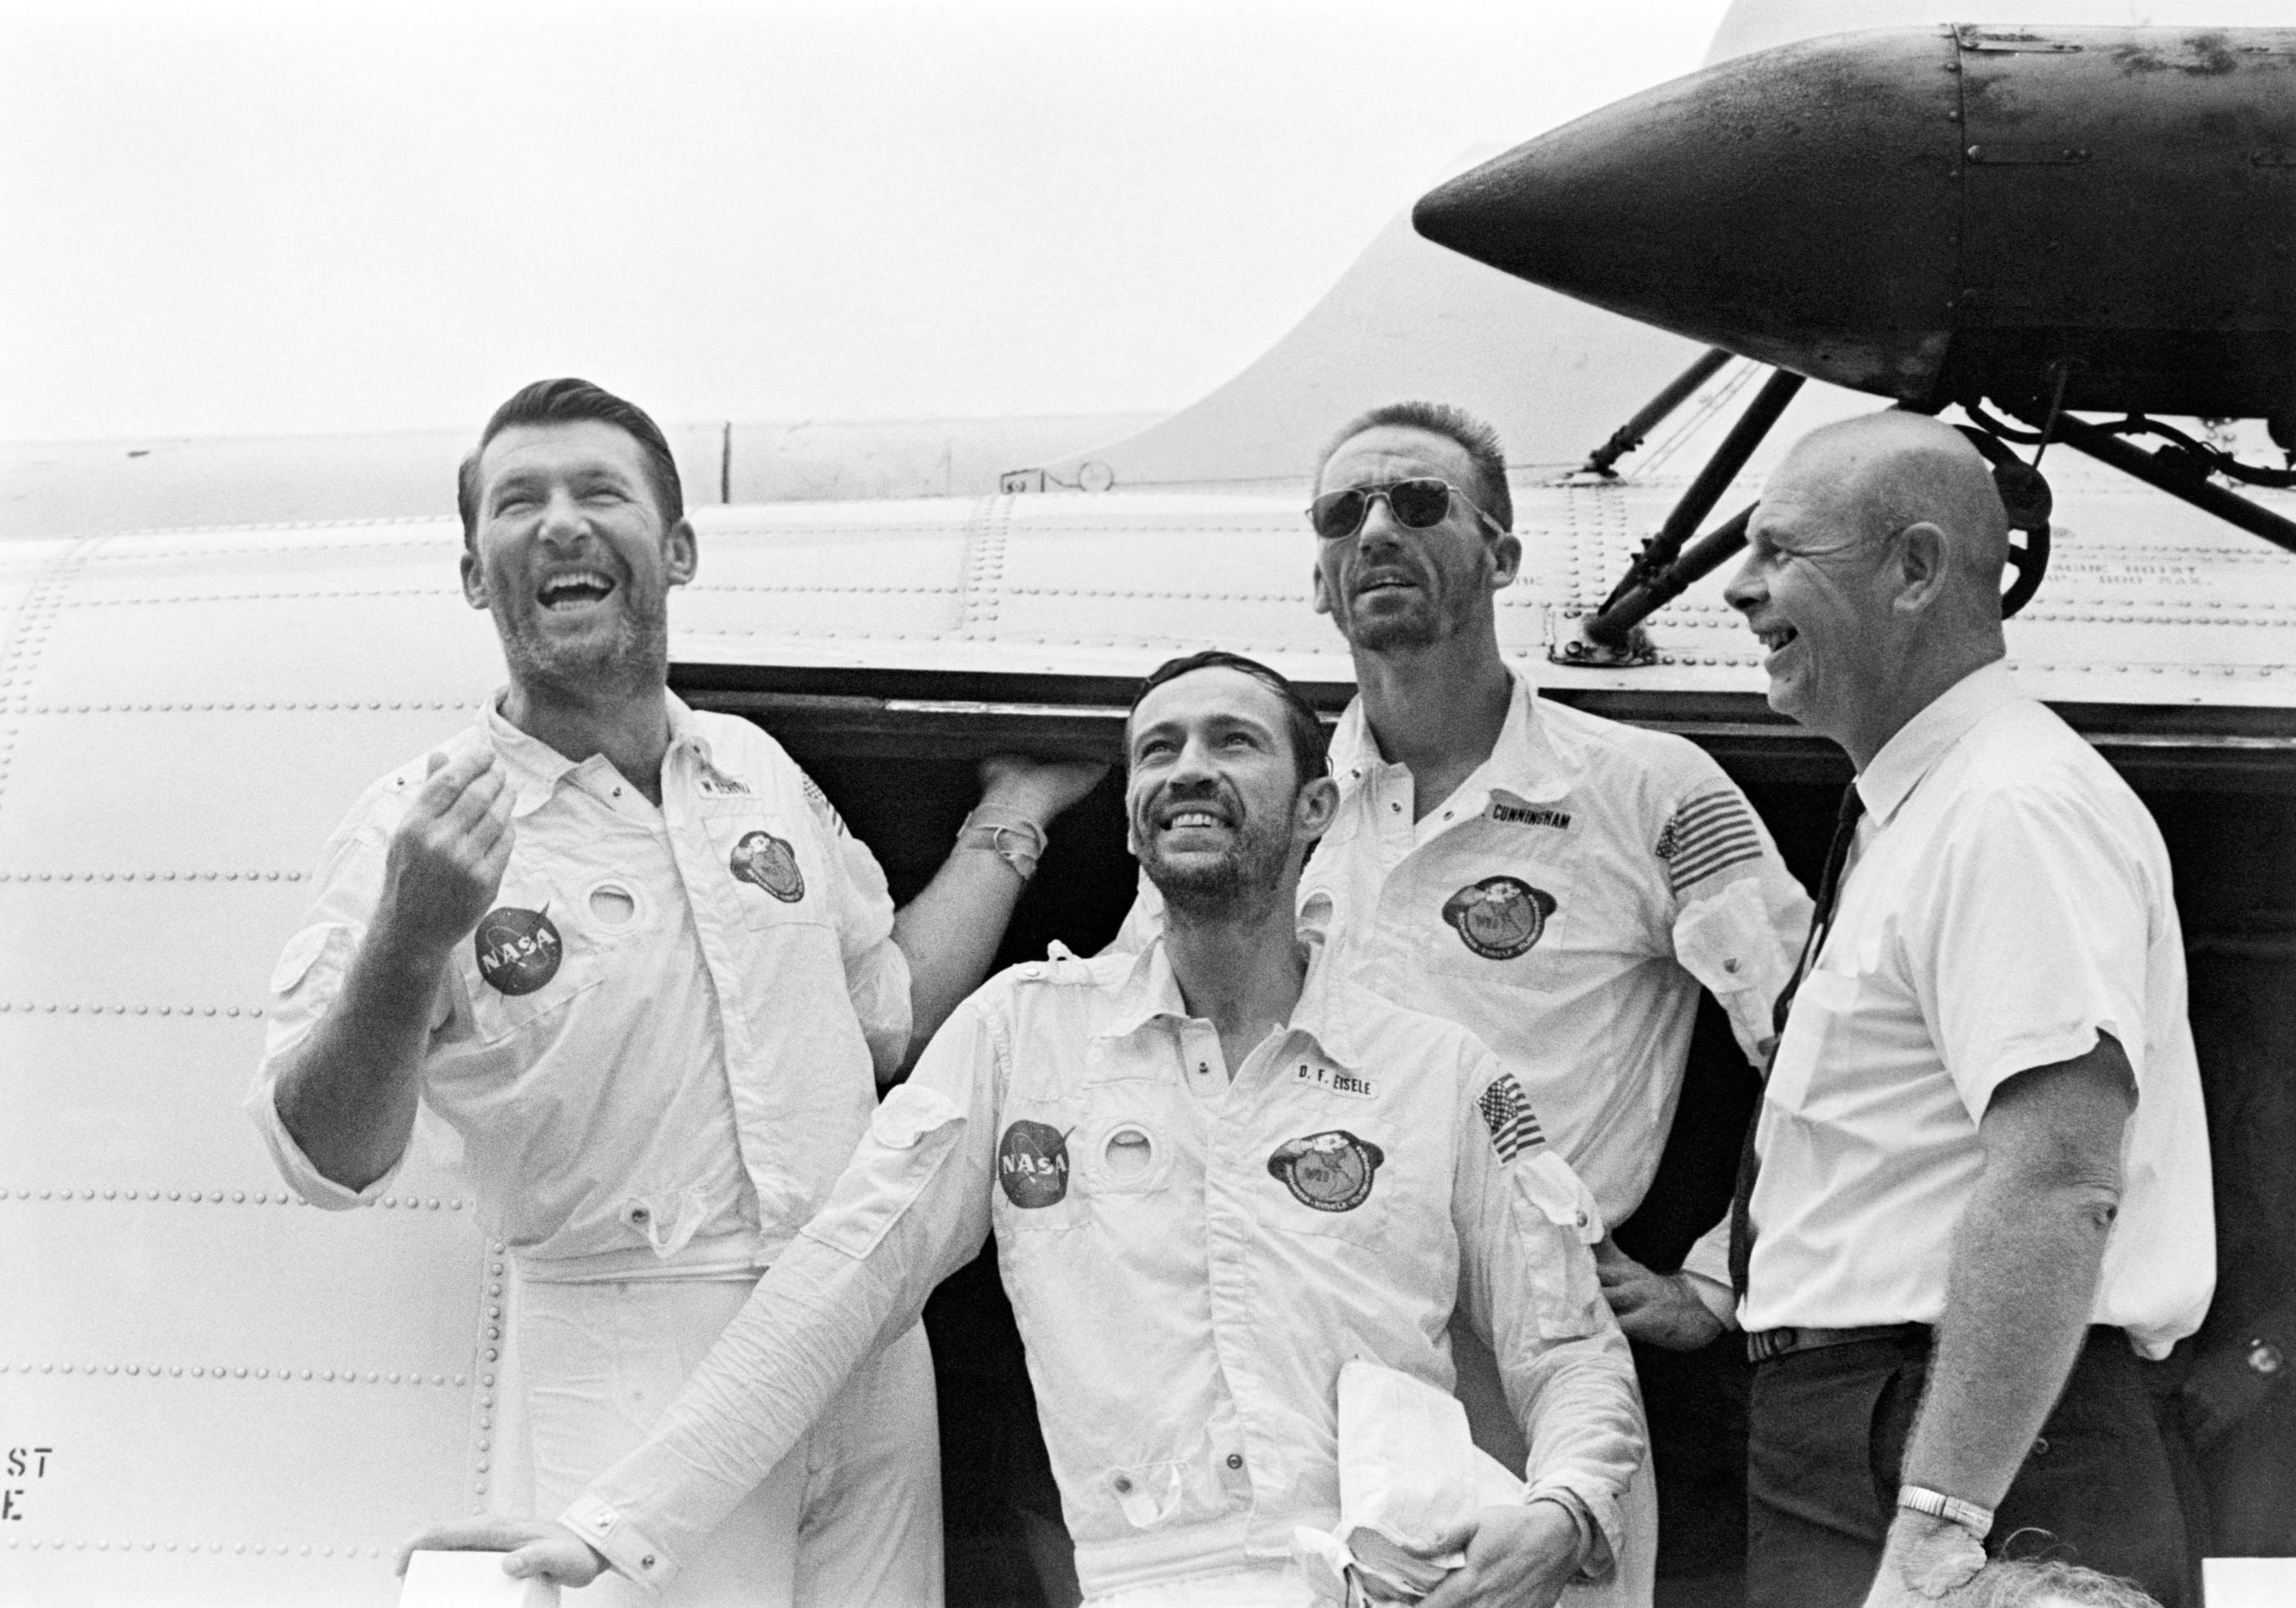 Apollo 7 crew after recovery